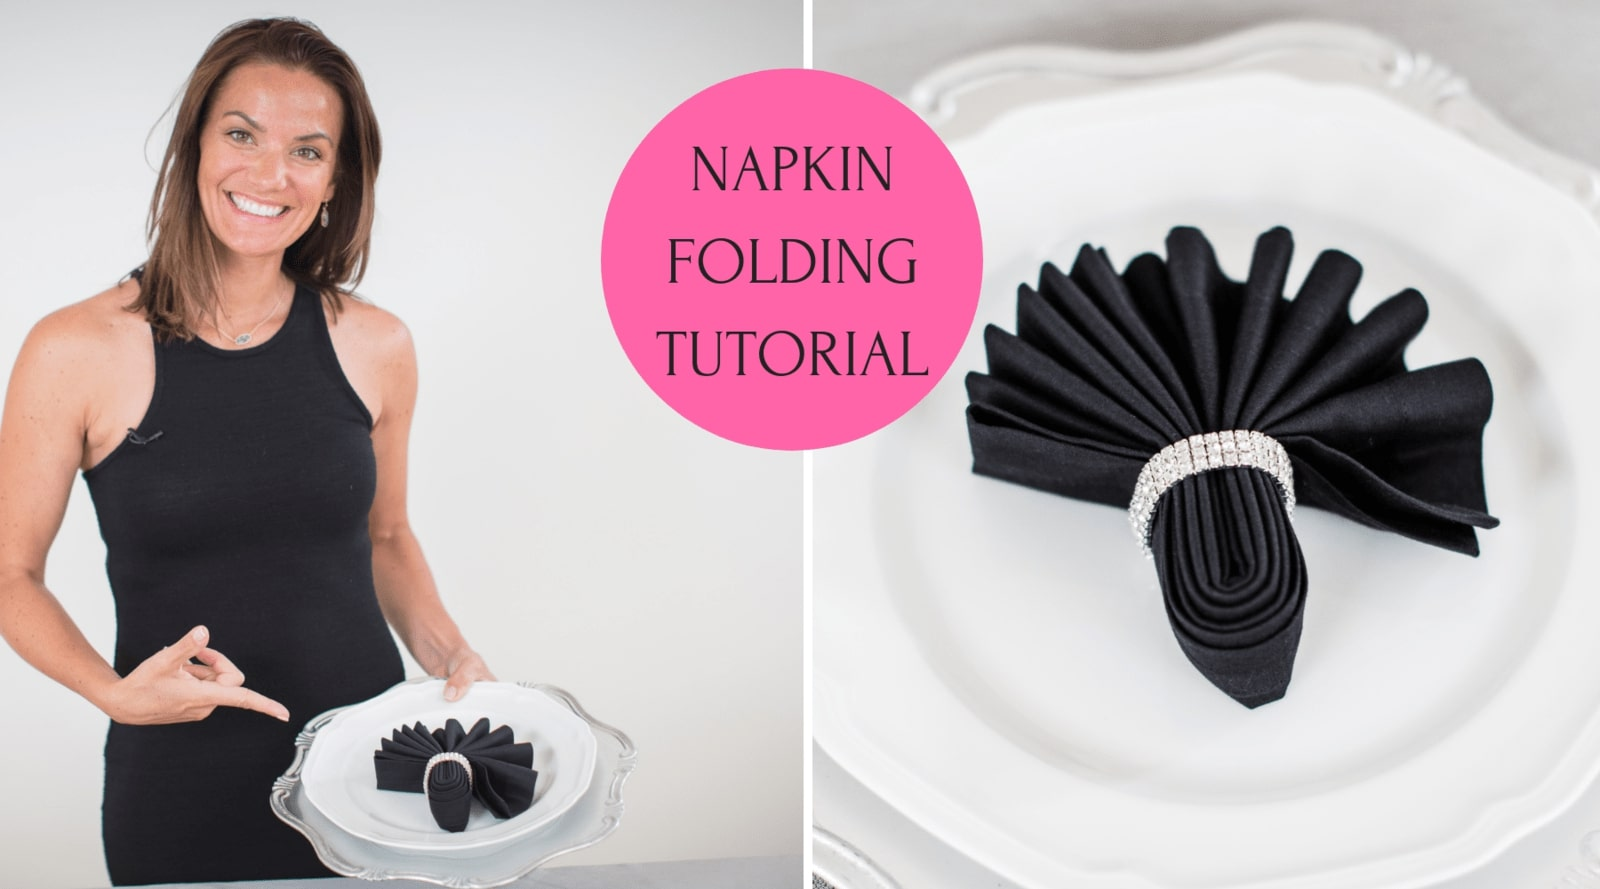 Napkin Fold for Wedding Fan Napkin Fold Tutorial - Quick, Easy and Stylish